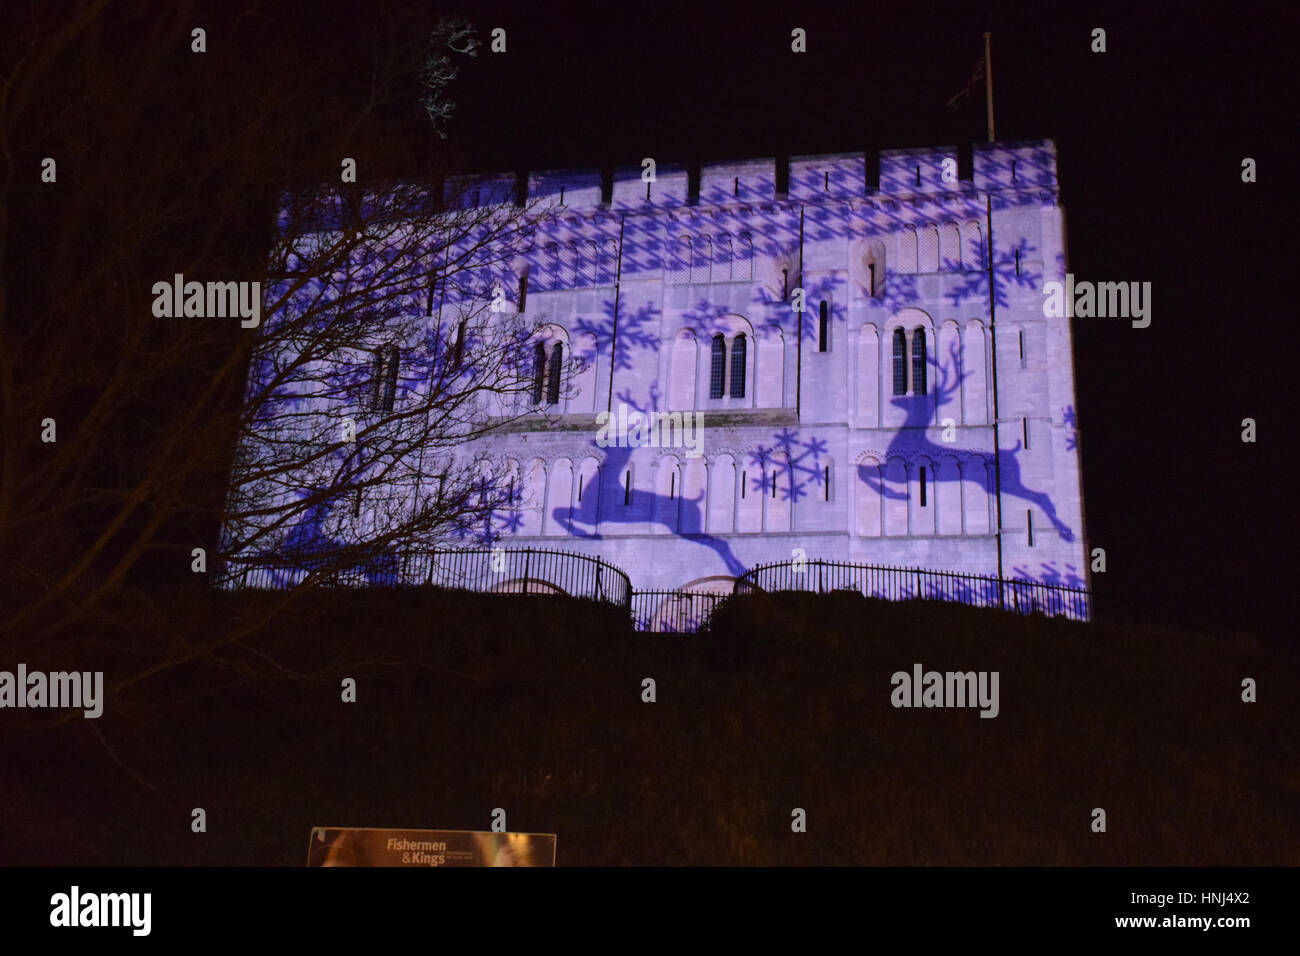 Christmas projection onto Norwich castle, December 2016 UK - Stock Image